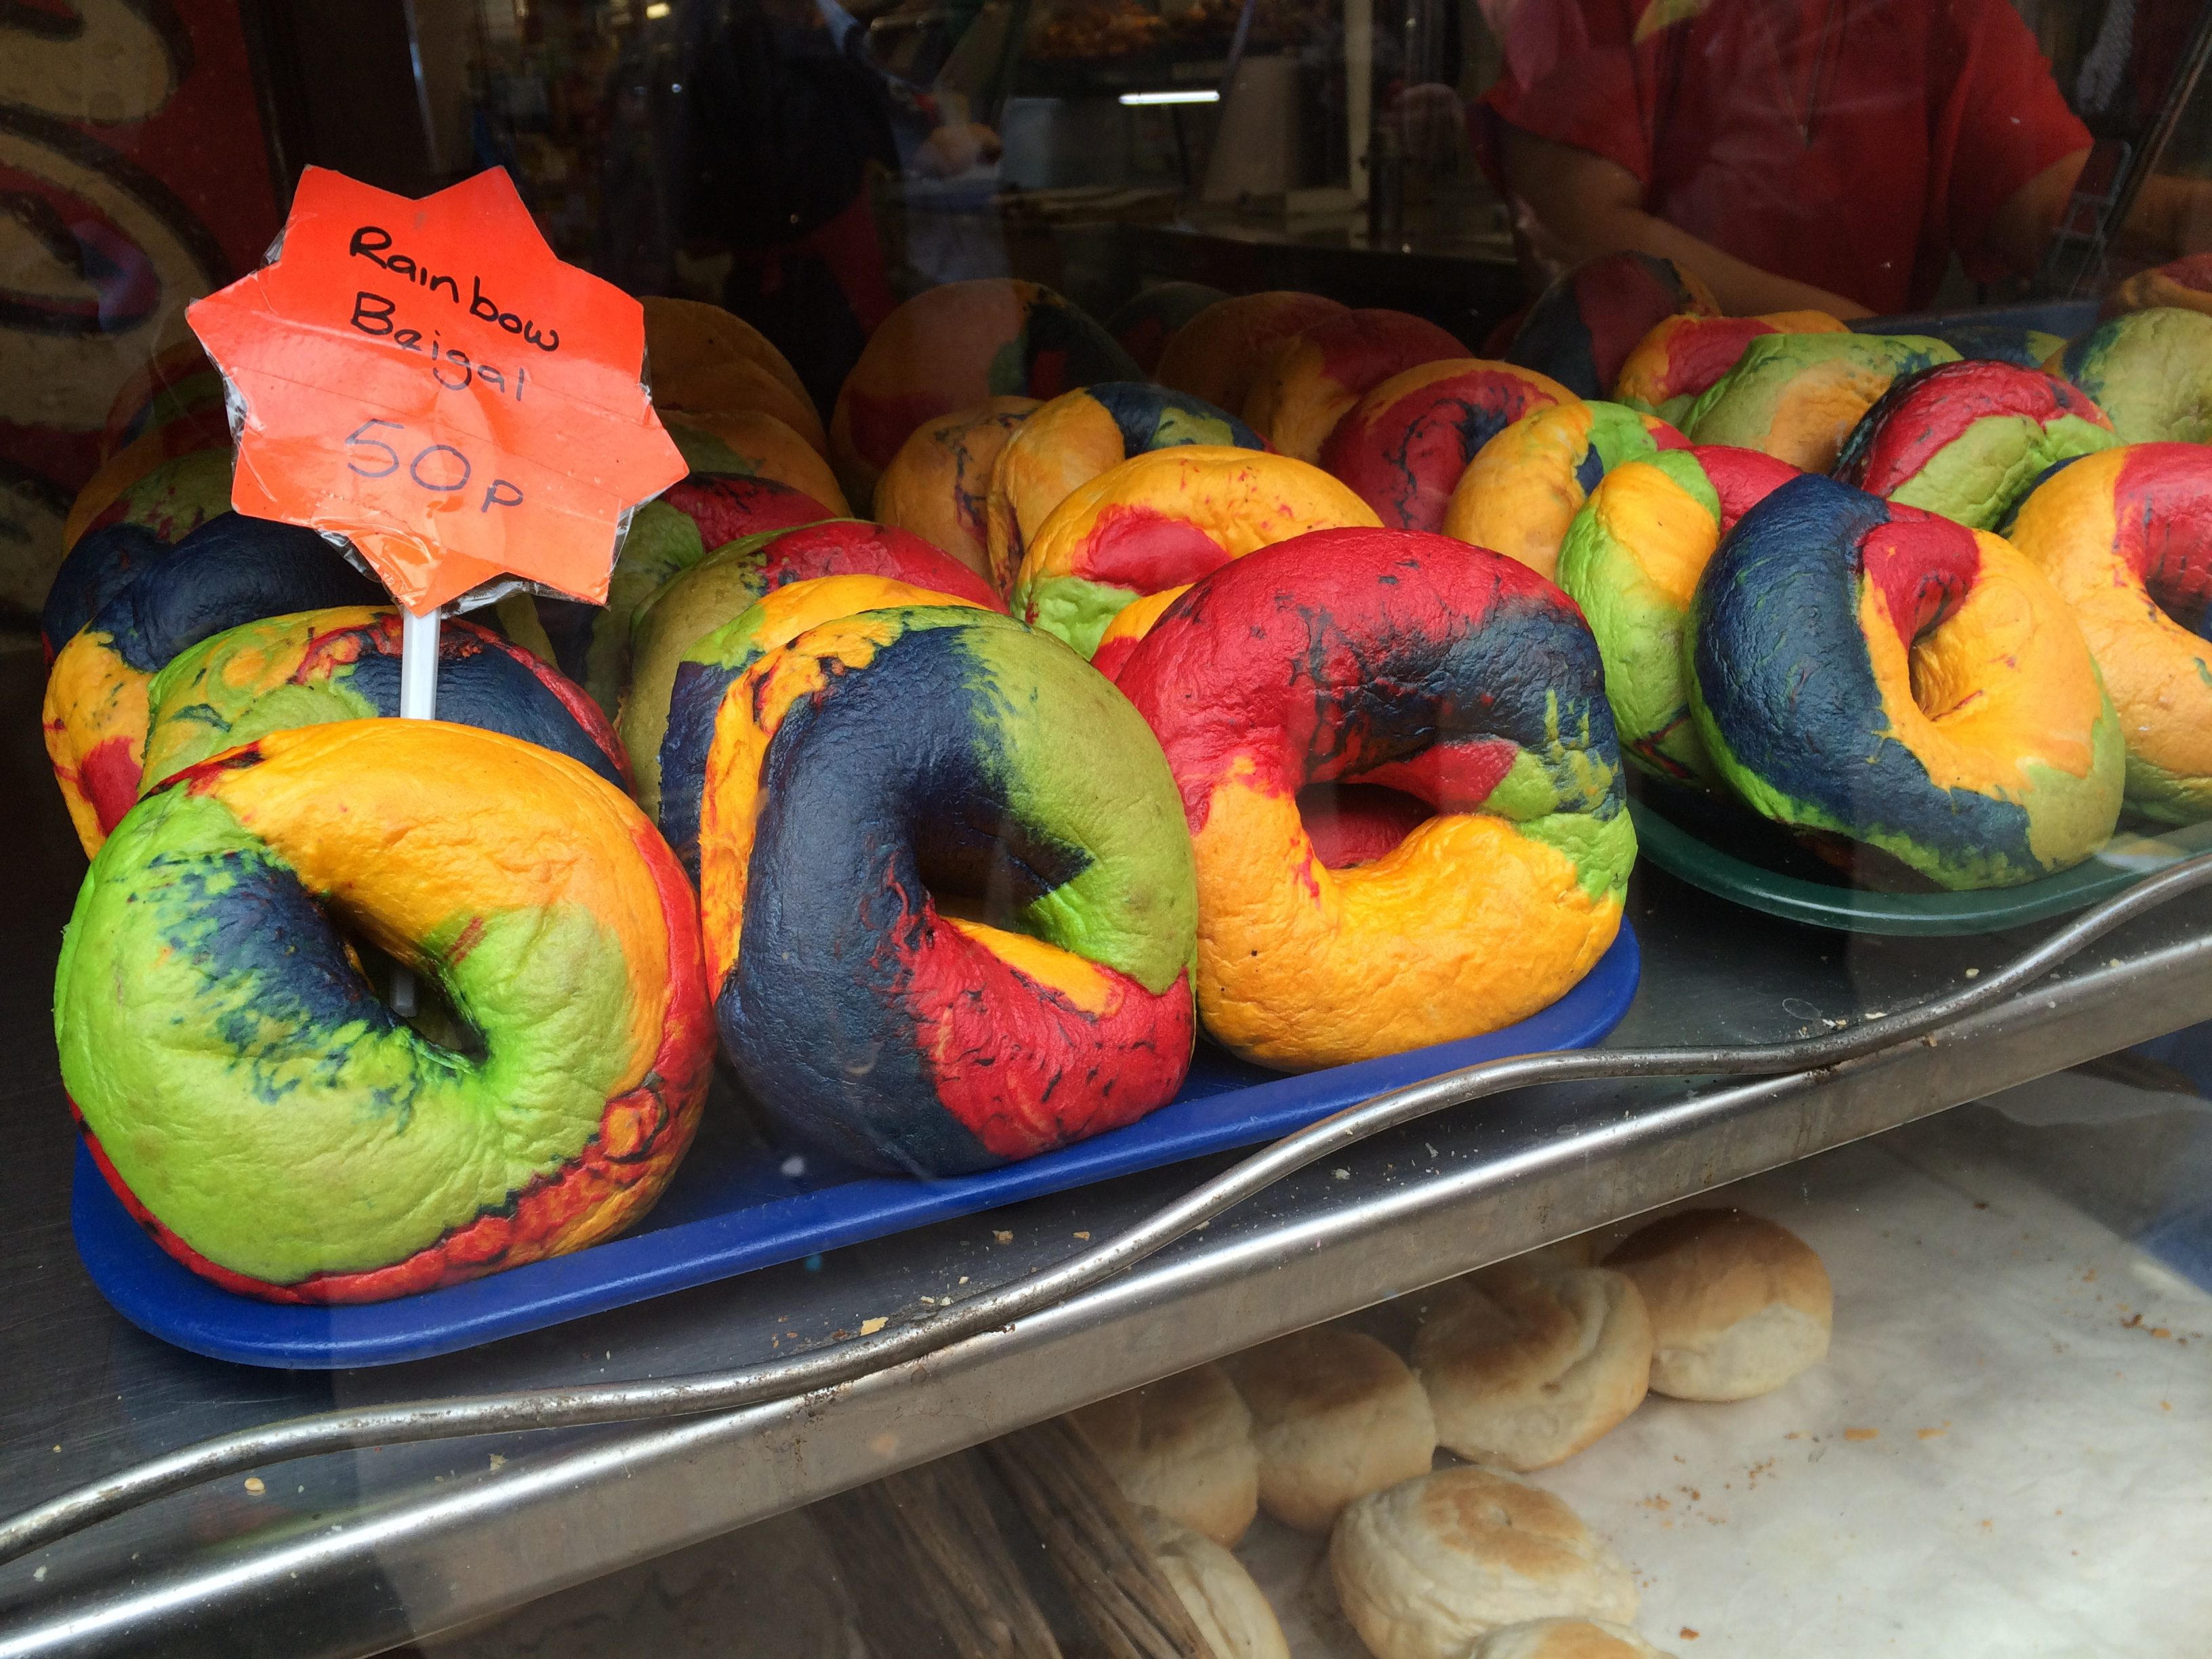 Where to find rainbow treats in London? Find out on www.ayewanderful.com. Rainbow croissants, rainbow cupcakes and Rainbow bagels.